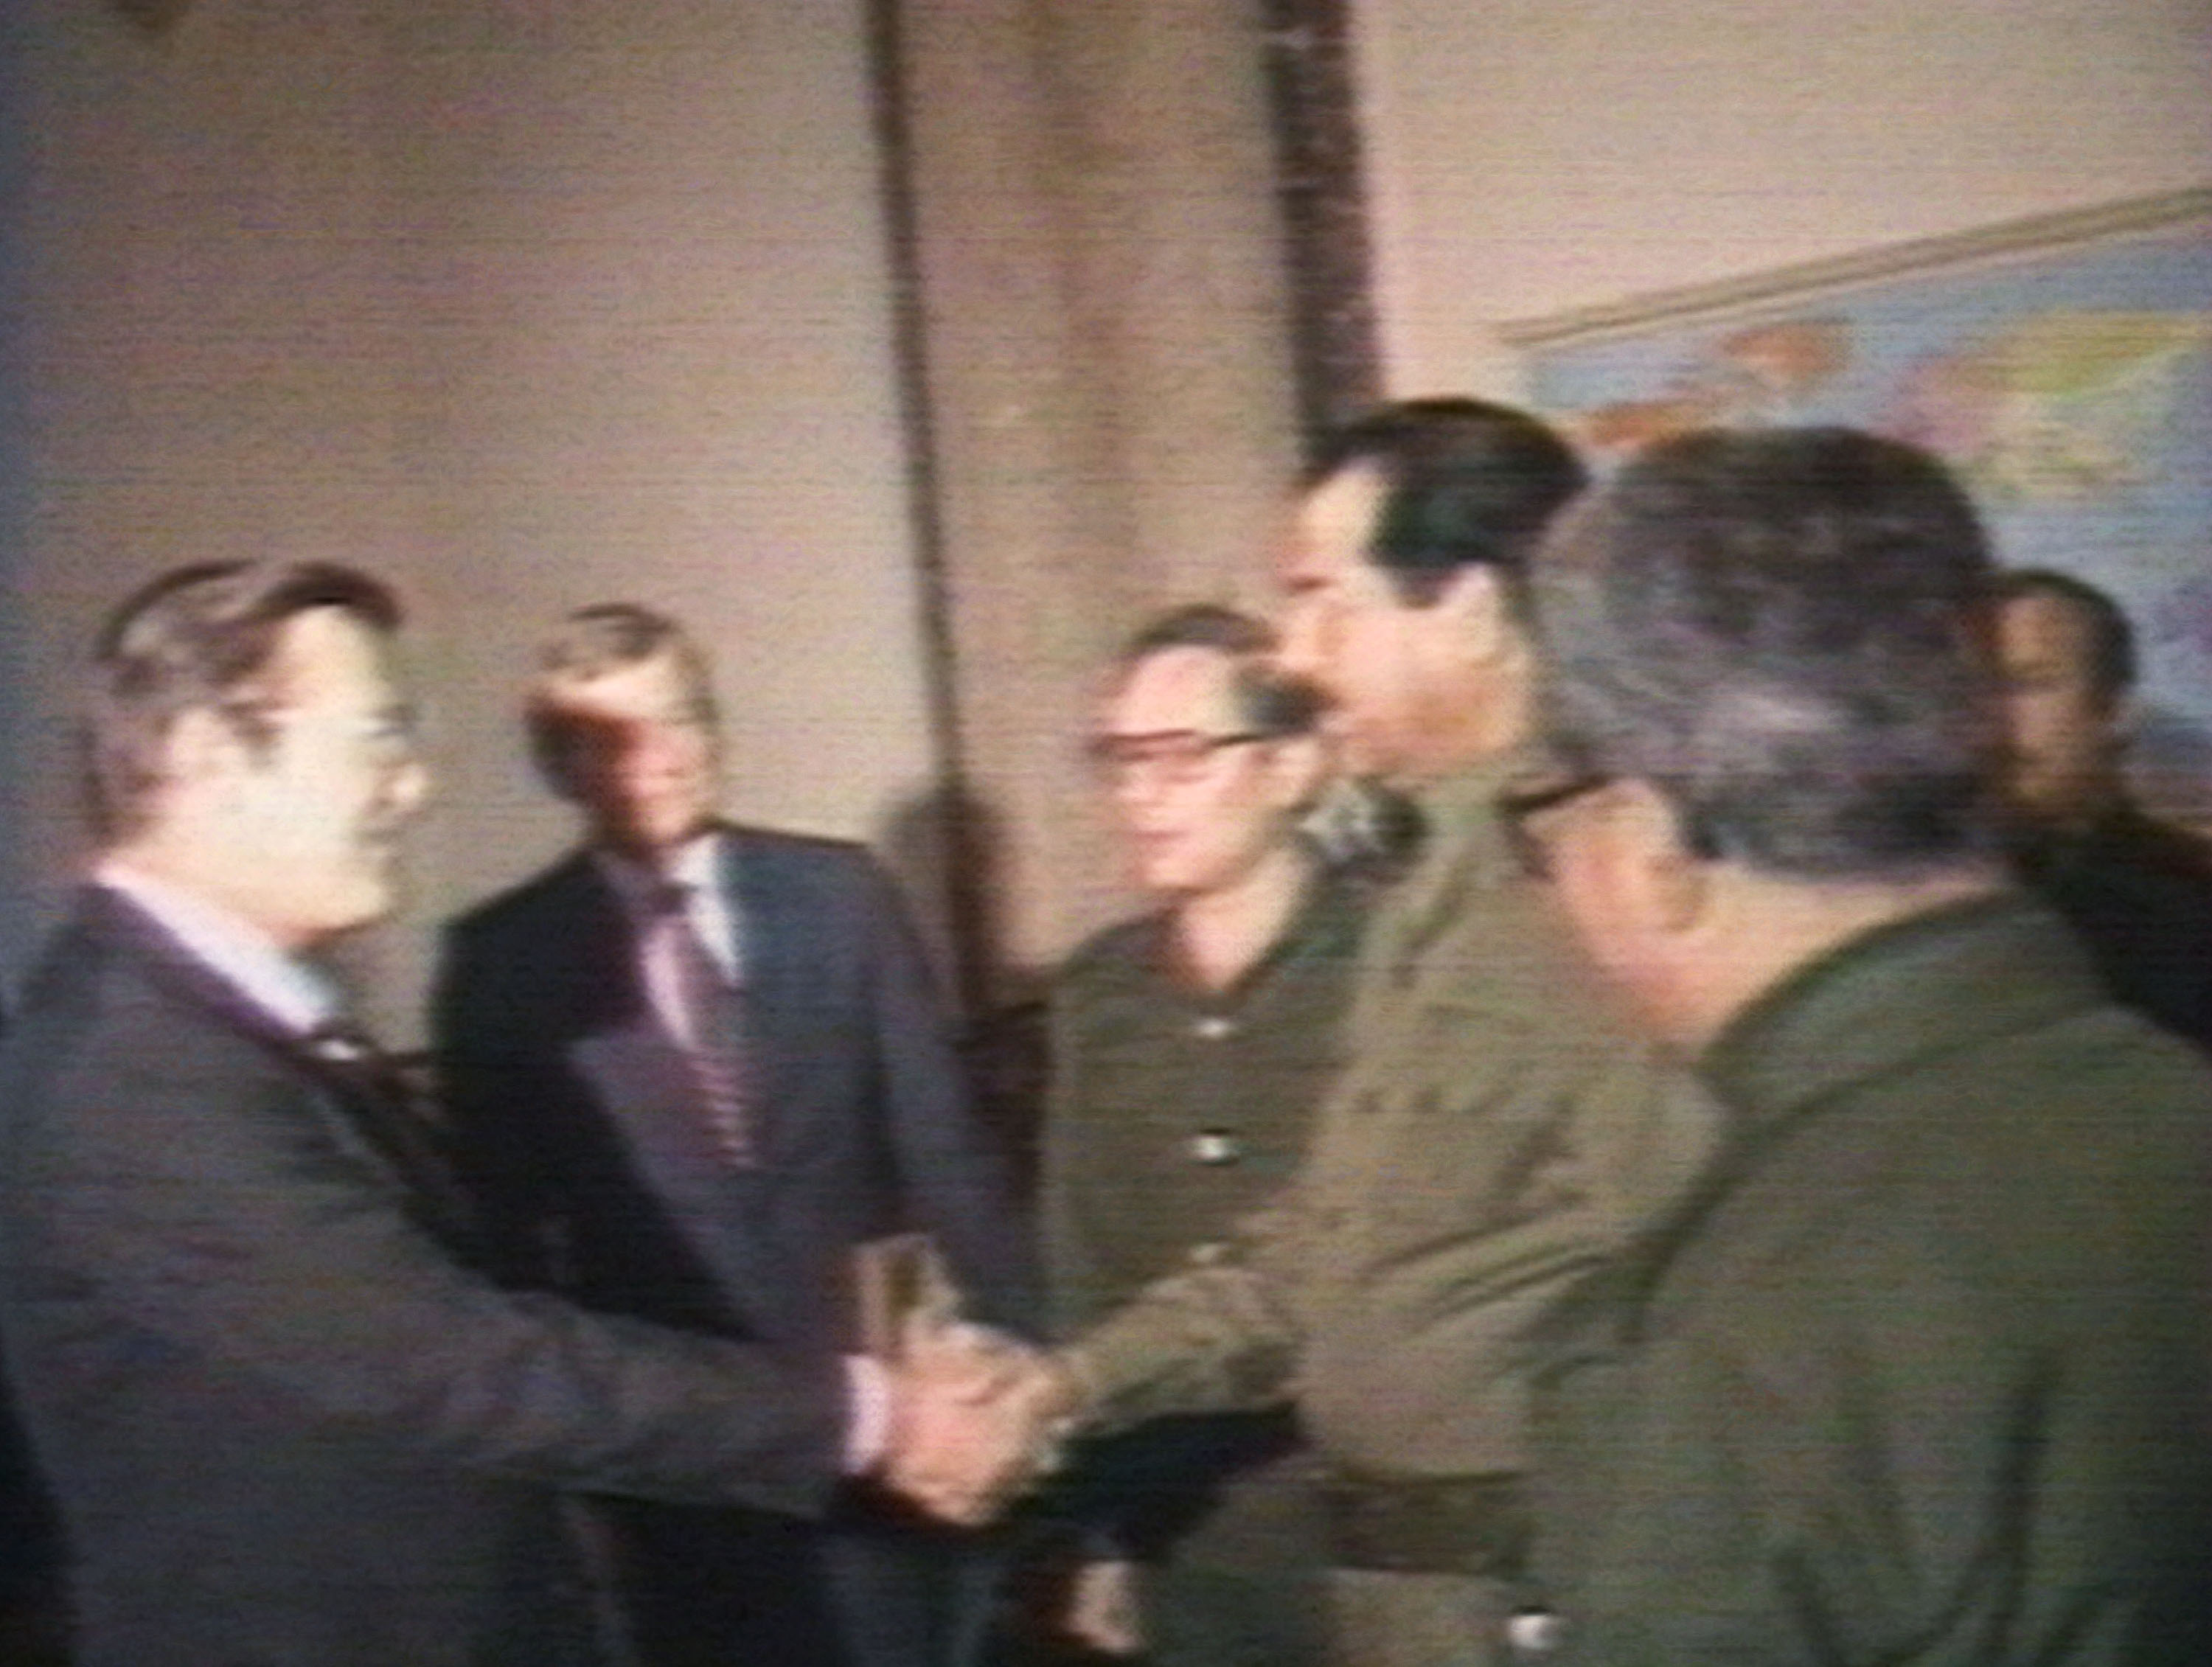 BAGHDAD, IRAQ - (VIDEO STILL) U.S. Secretary of Defense Donald Rumsfeld and Iraqi President Saddam Hussein shake hands December 20, 1983 in Baghdad. Rumsfeld met with Hussein during the war between Iran and Iraq as an envoy for former U.S. President Ronald Reagan. Rumsfeld made no reference to Iraq's use of chemical weapons, according to detailed official notes on the meeting. (Photo by Getty Images)